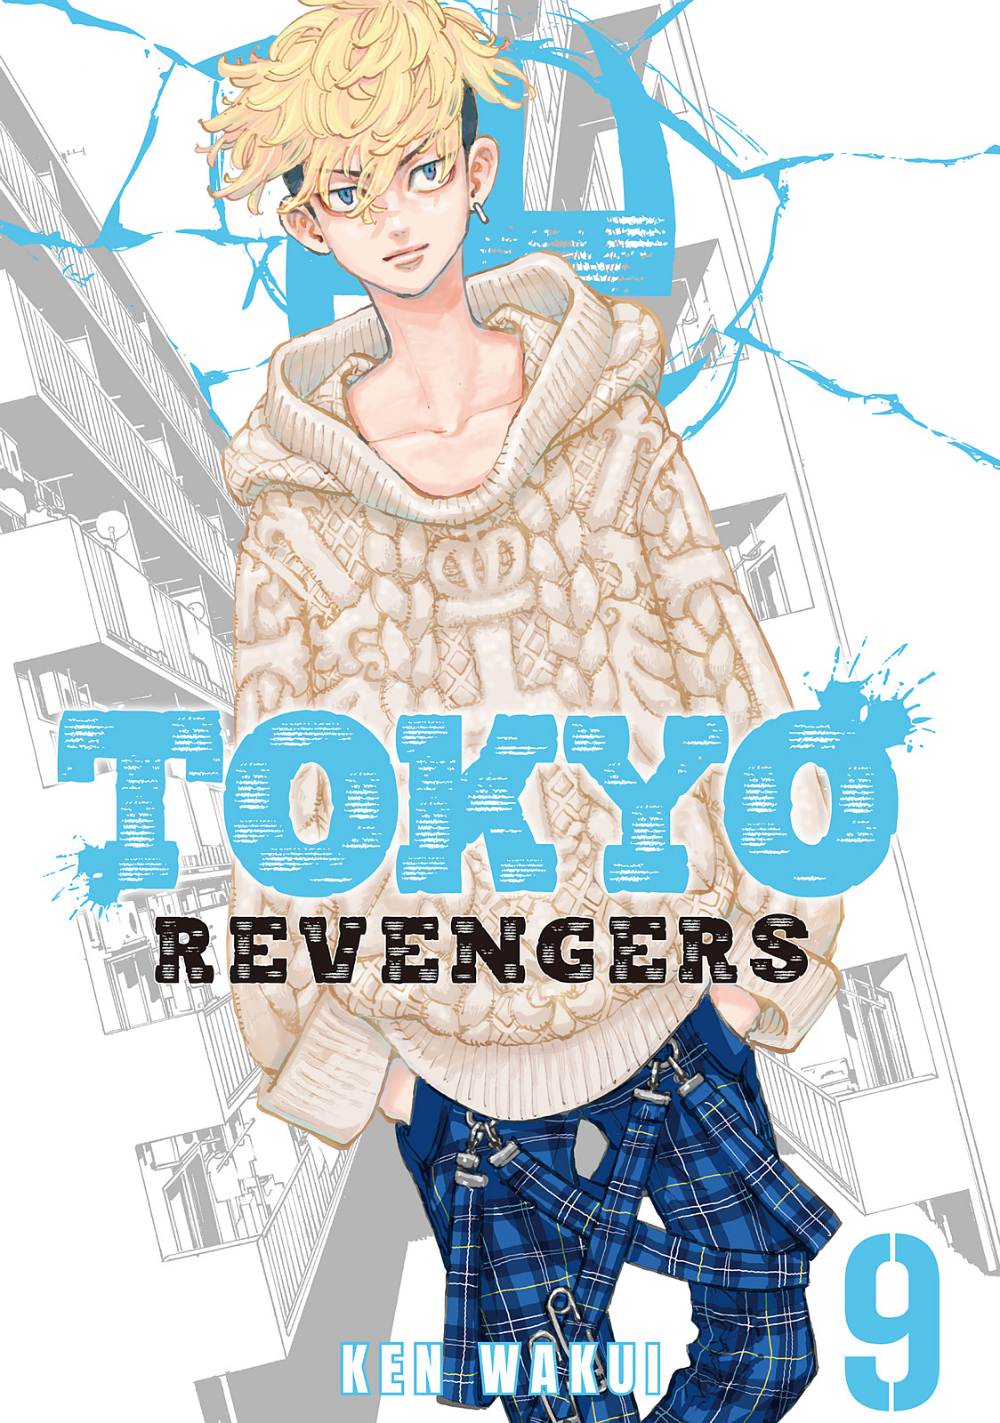 Toukyou Revengers Chapter 71 Page 1 In 2021 Manga Covers Tokyo Gothic Anime